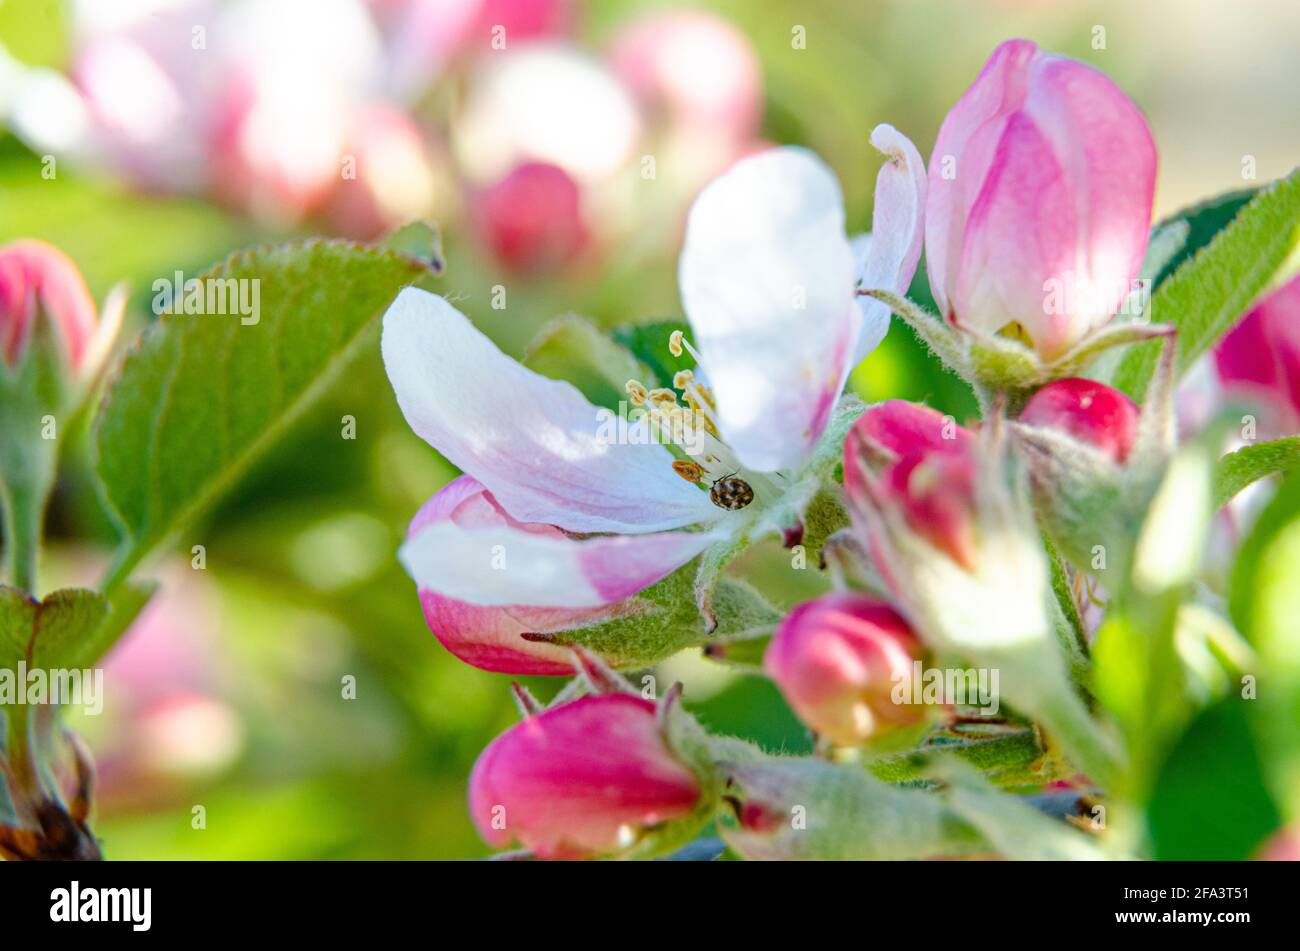 apple-blossom-and-flower-buds-on-an-apple-tree-in-a-residential-garden-2FA3T51.jpg